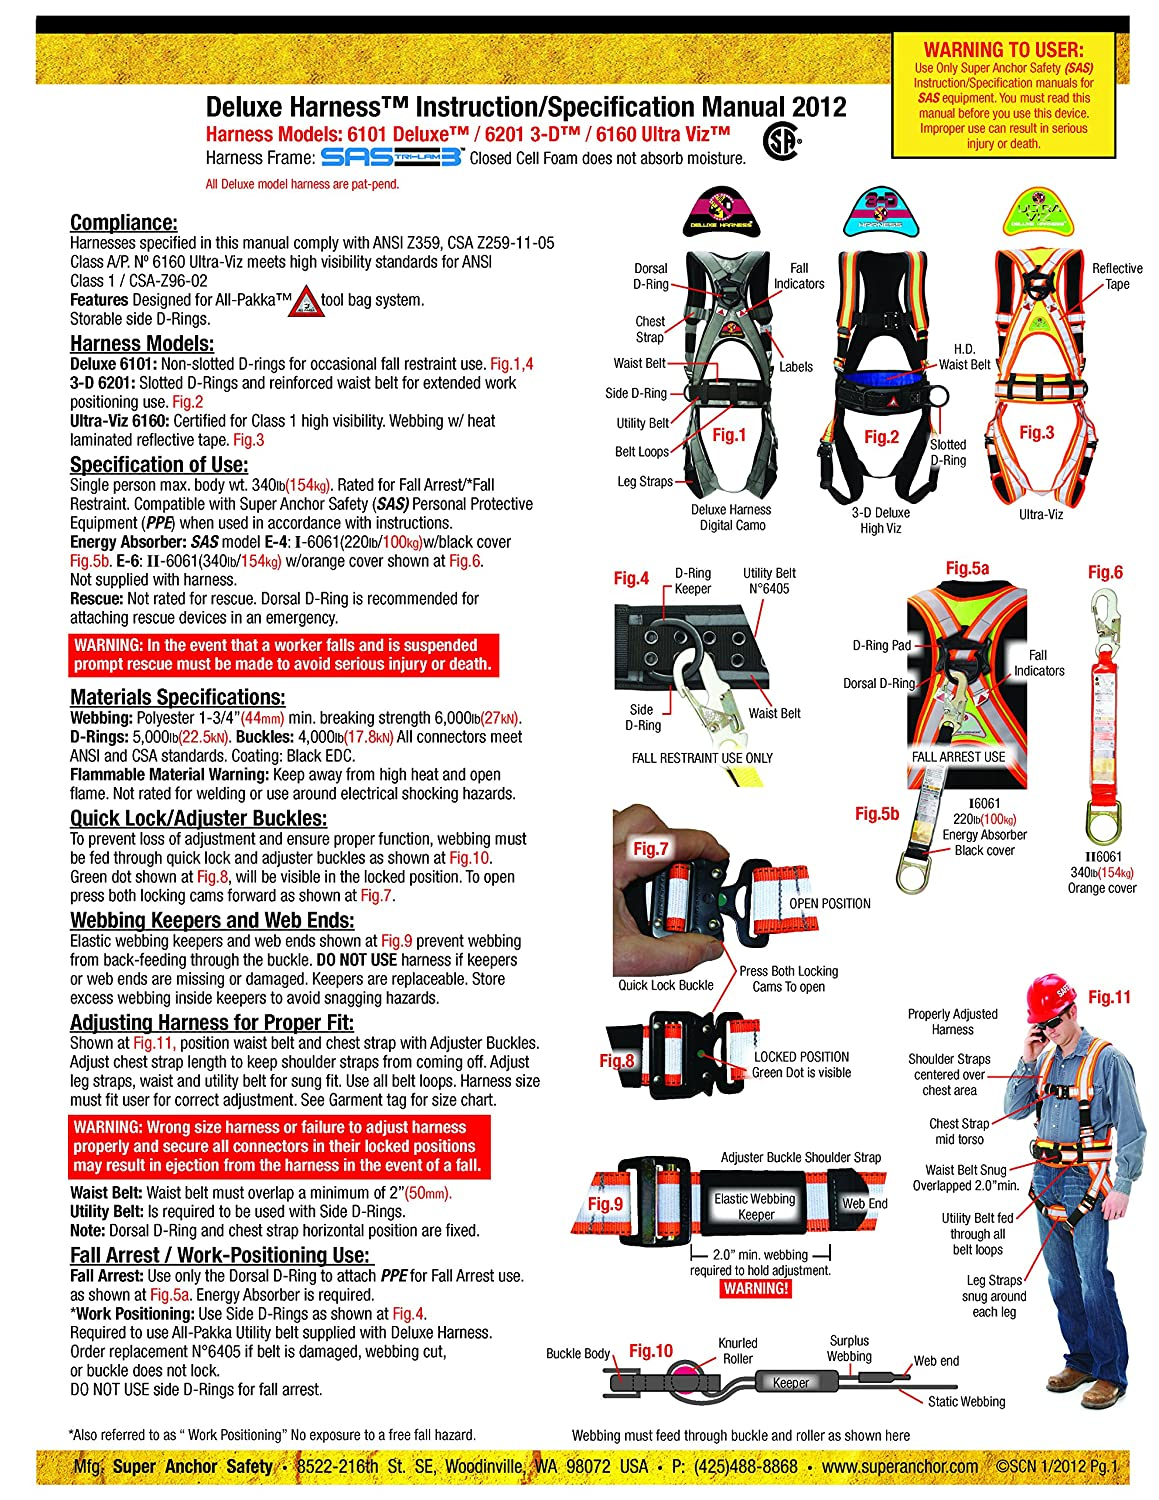 Large Long Red Super Anchor Safety 6151-RLL Deluxe Full Body Harness plus All-Pakka Tool Bag Combo